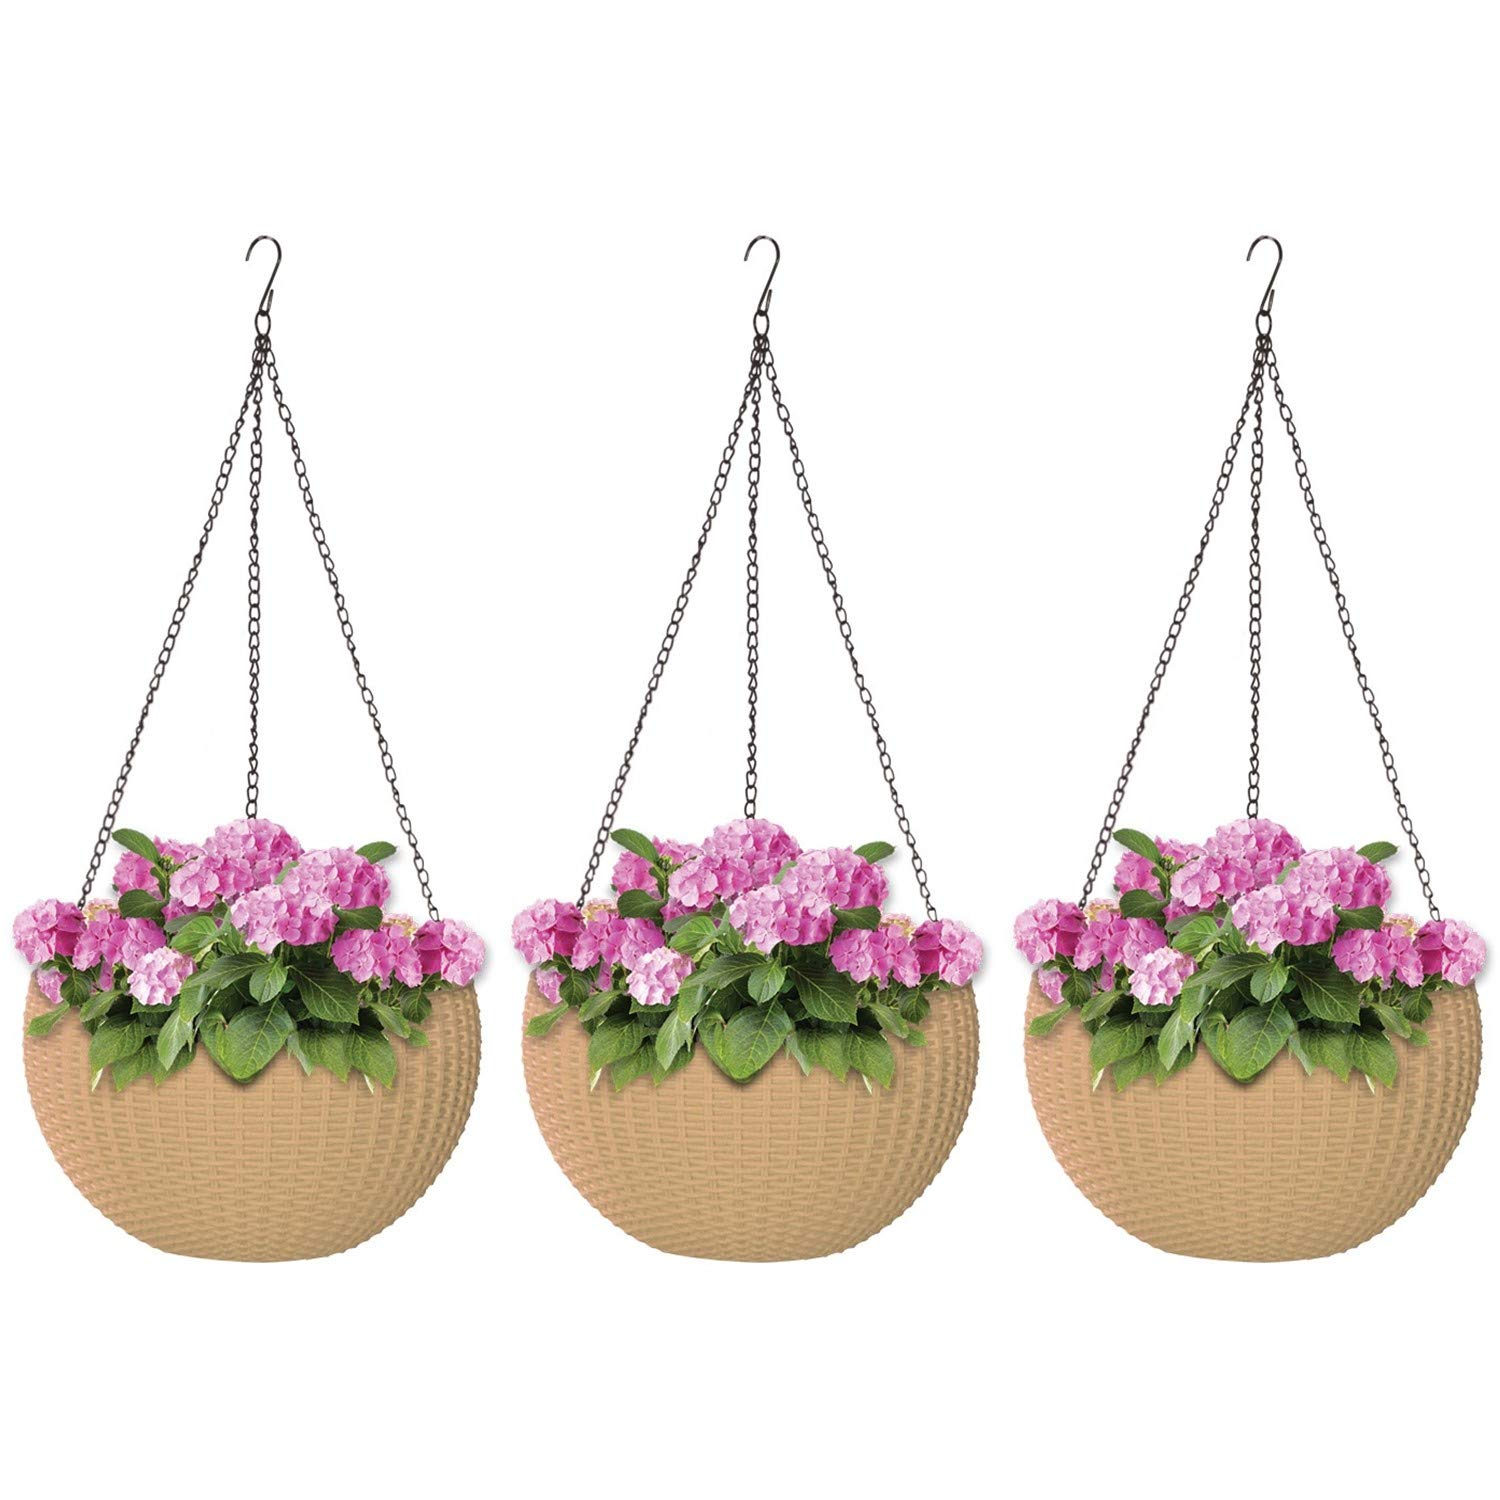 ALMI Hanna Hanging Planter 11 Inch [3 Pack] Round Plastic Decor Garden Resin Flower Pot Chain Basket for Plant, Planters for Plants, for Indoor and Outdoor, Impruneta